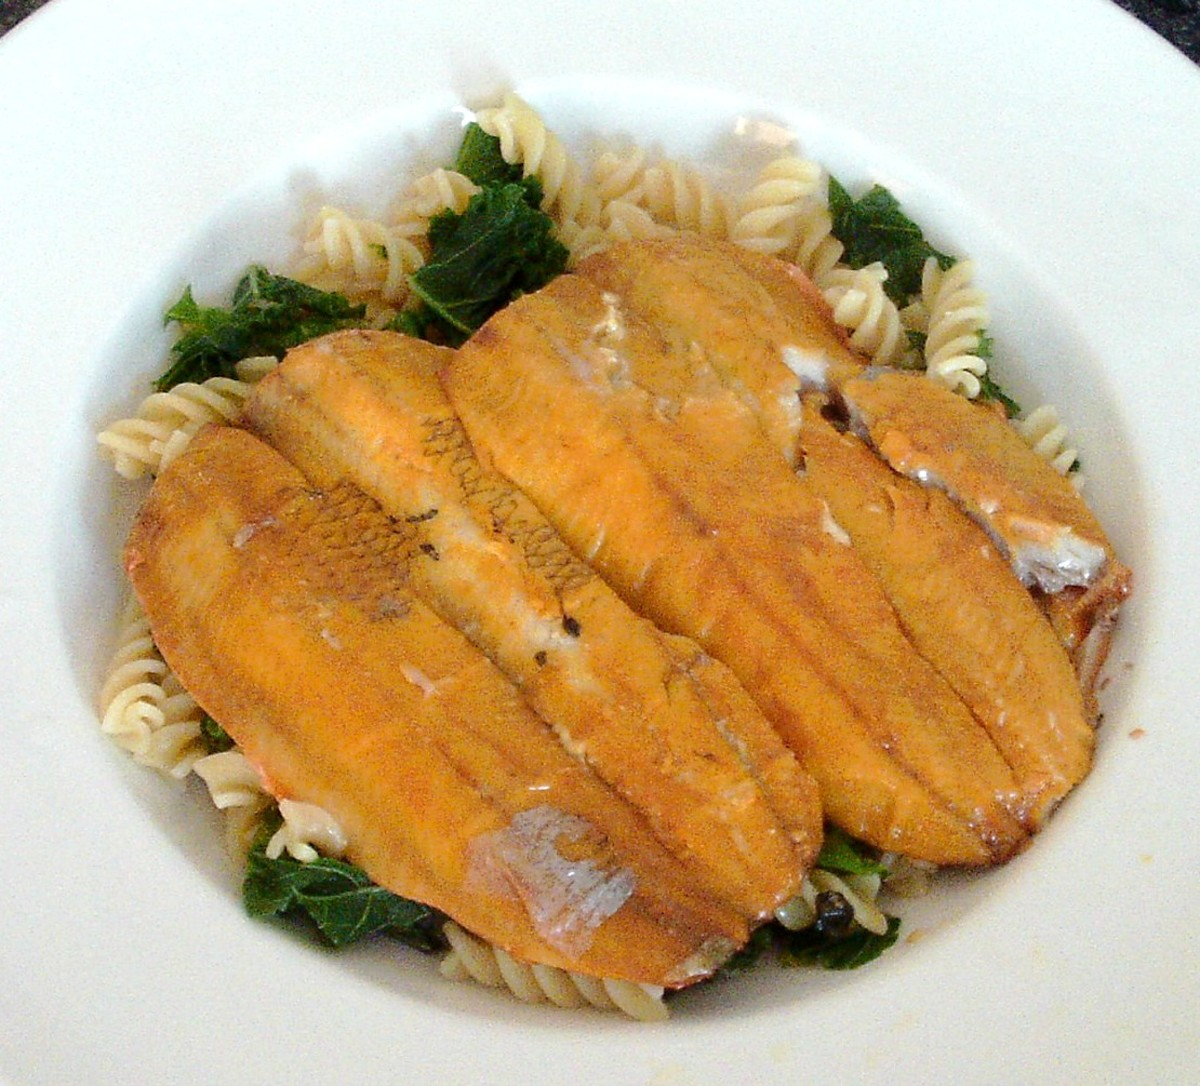 Boil in the bag kippers are served on a bed of curly kale and pasta